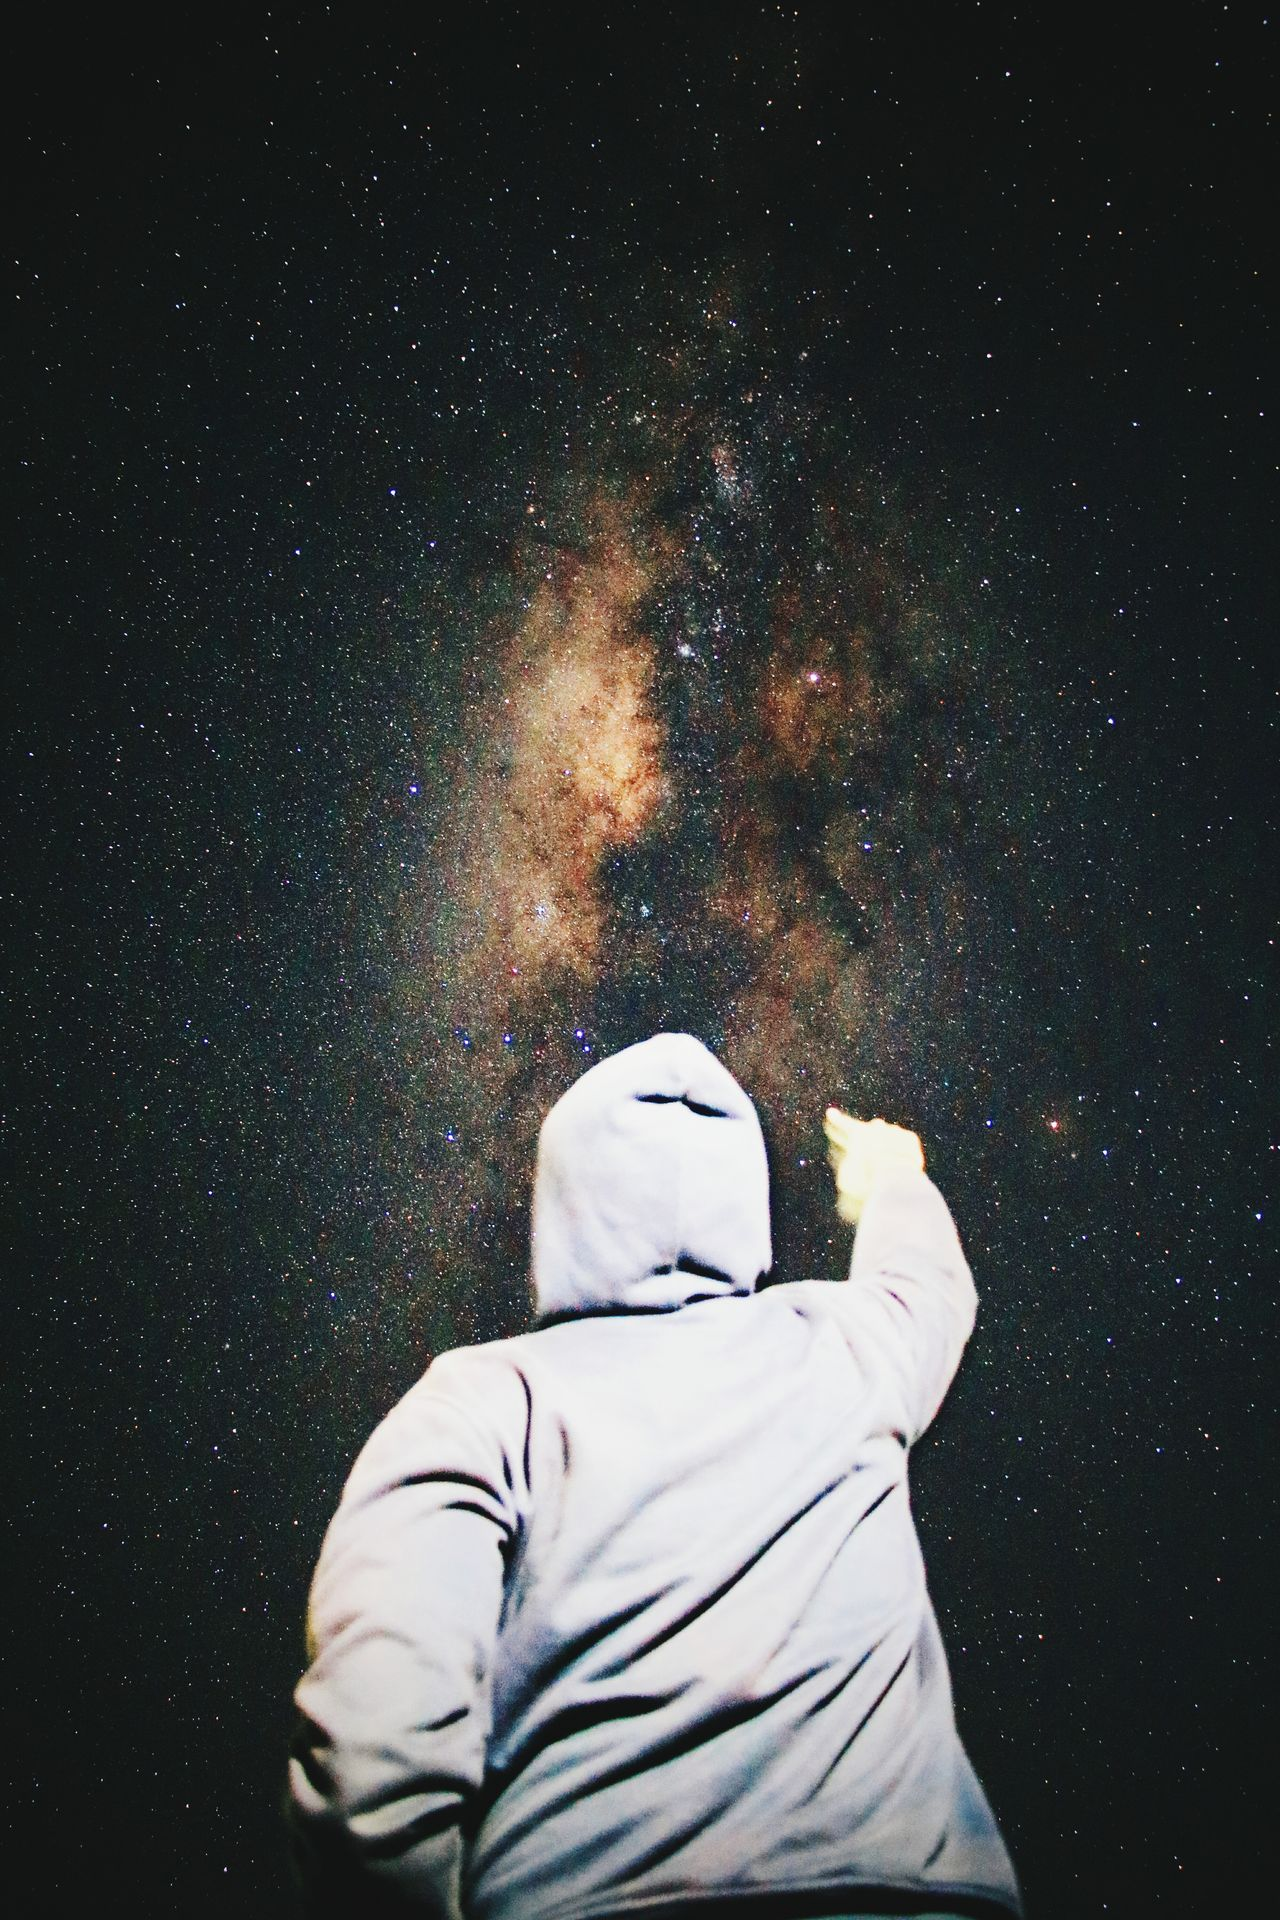 The milky way Space Star - Space Winter Rear View Snow Cold Temperature Astronomy One Person Night Snowing Wireless Technology Only Men Adults Only Photography Themes Communication One Man Only People Galaxy Adult Snowflake